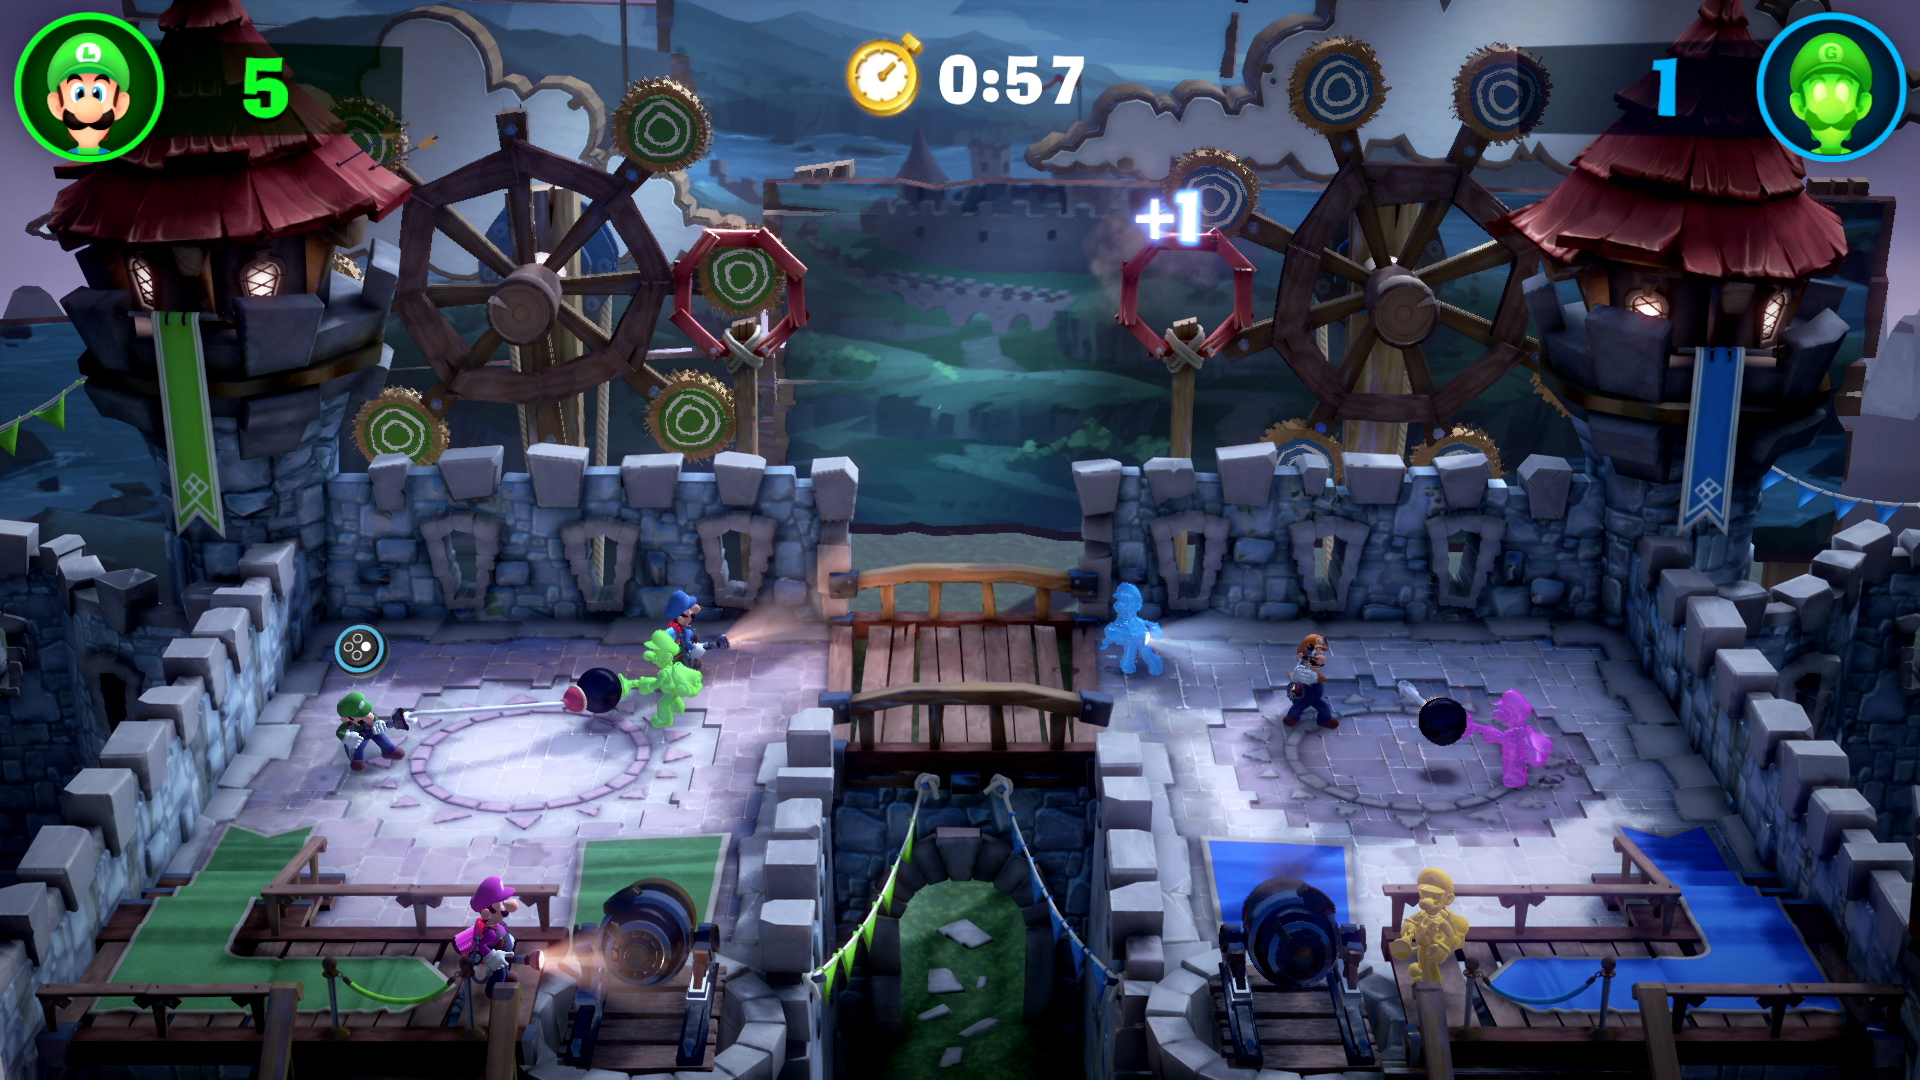 Luigi's Mansion 3 review: Multiplayer is online, co-op isn't.